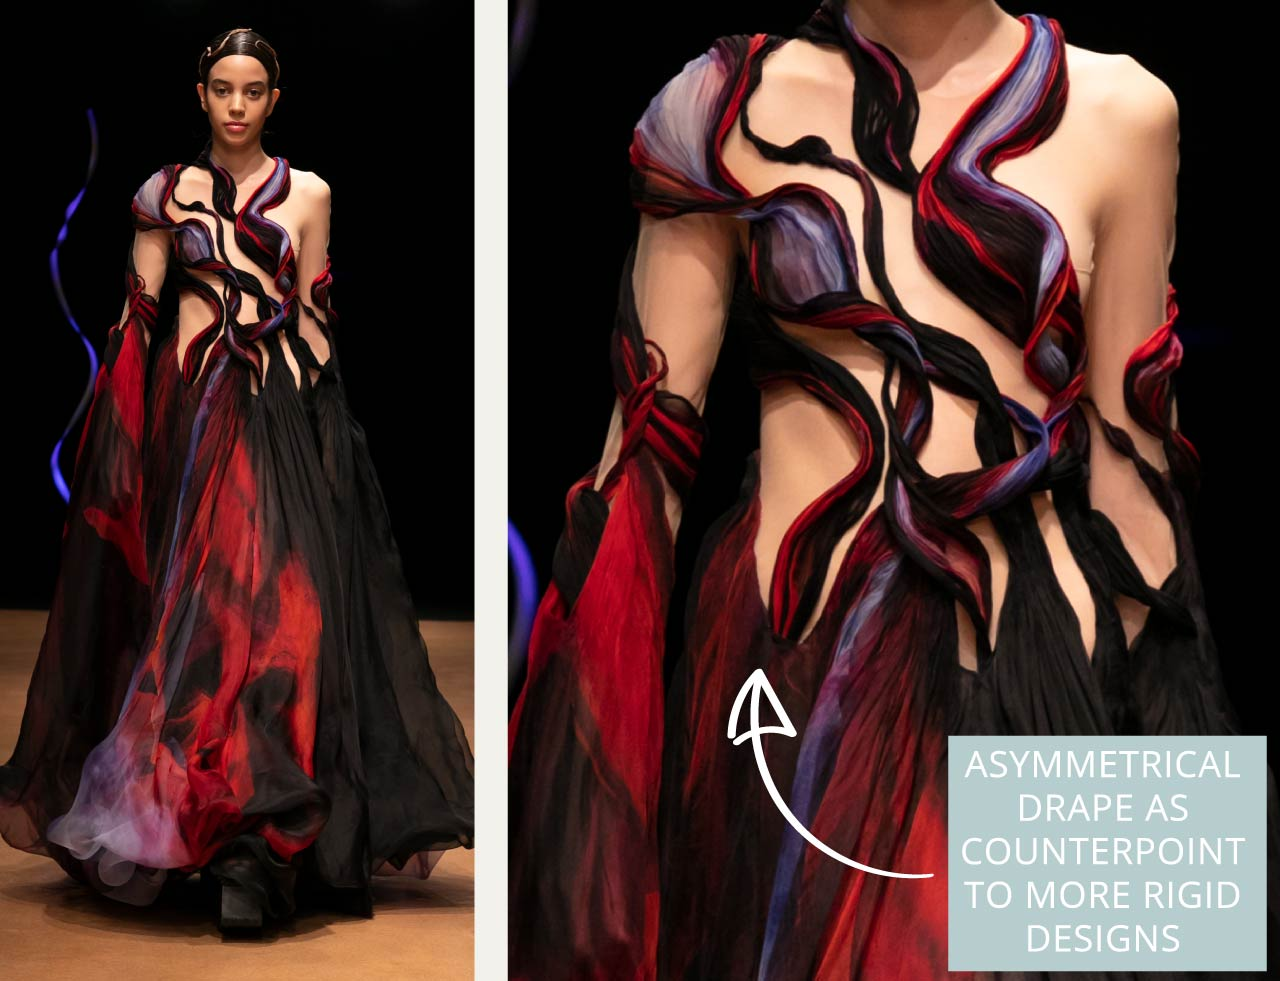 Contemporary Couture Techniques at Iris van Herpen | The Cutting Class. Asymmetrical drape used as counterpoint to more rigid designs.